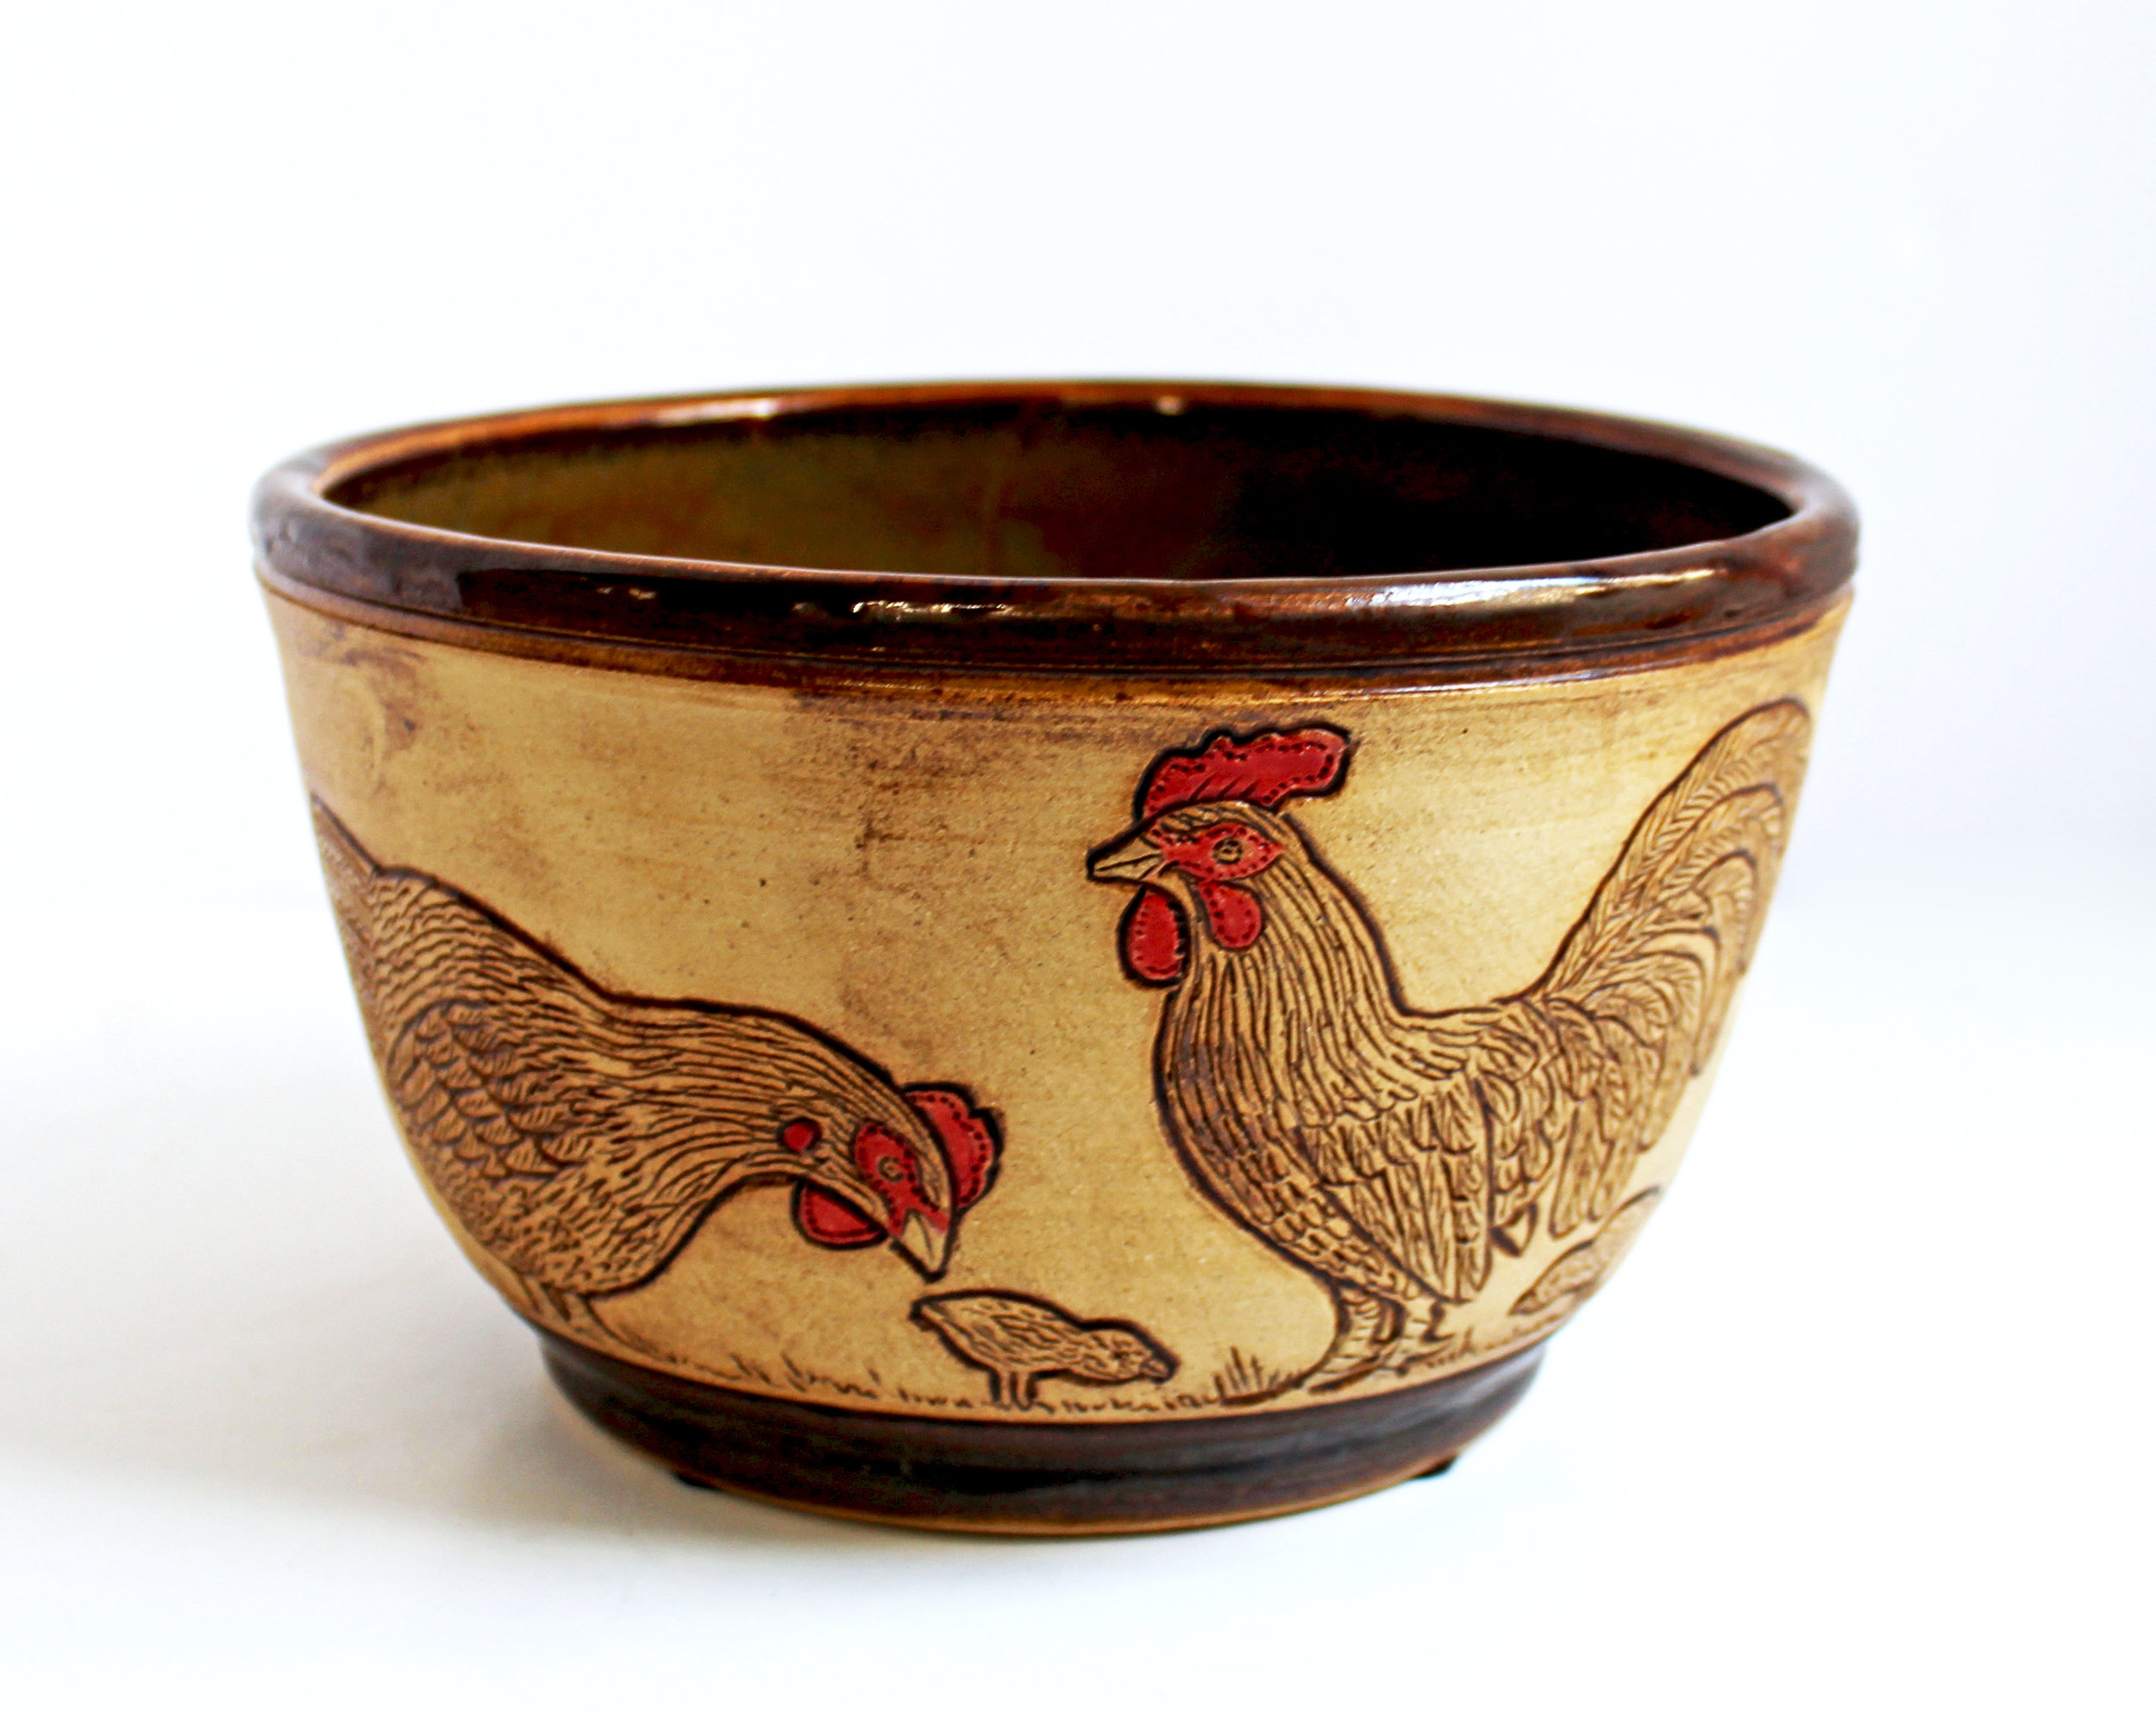 Etched Chicken Bowl